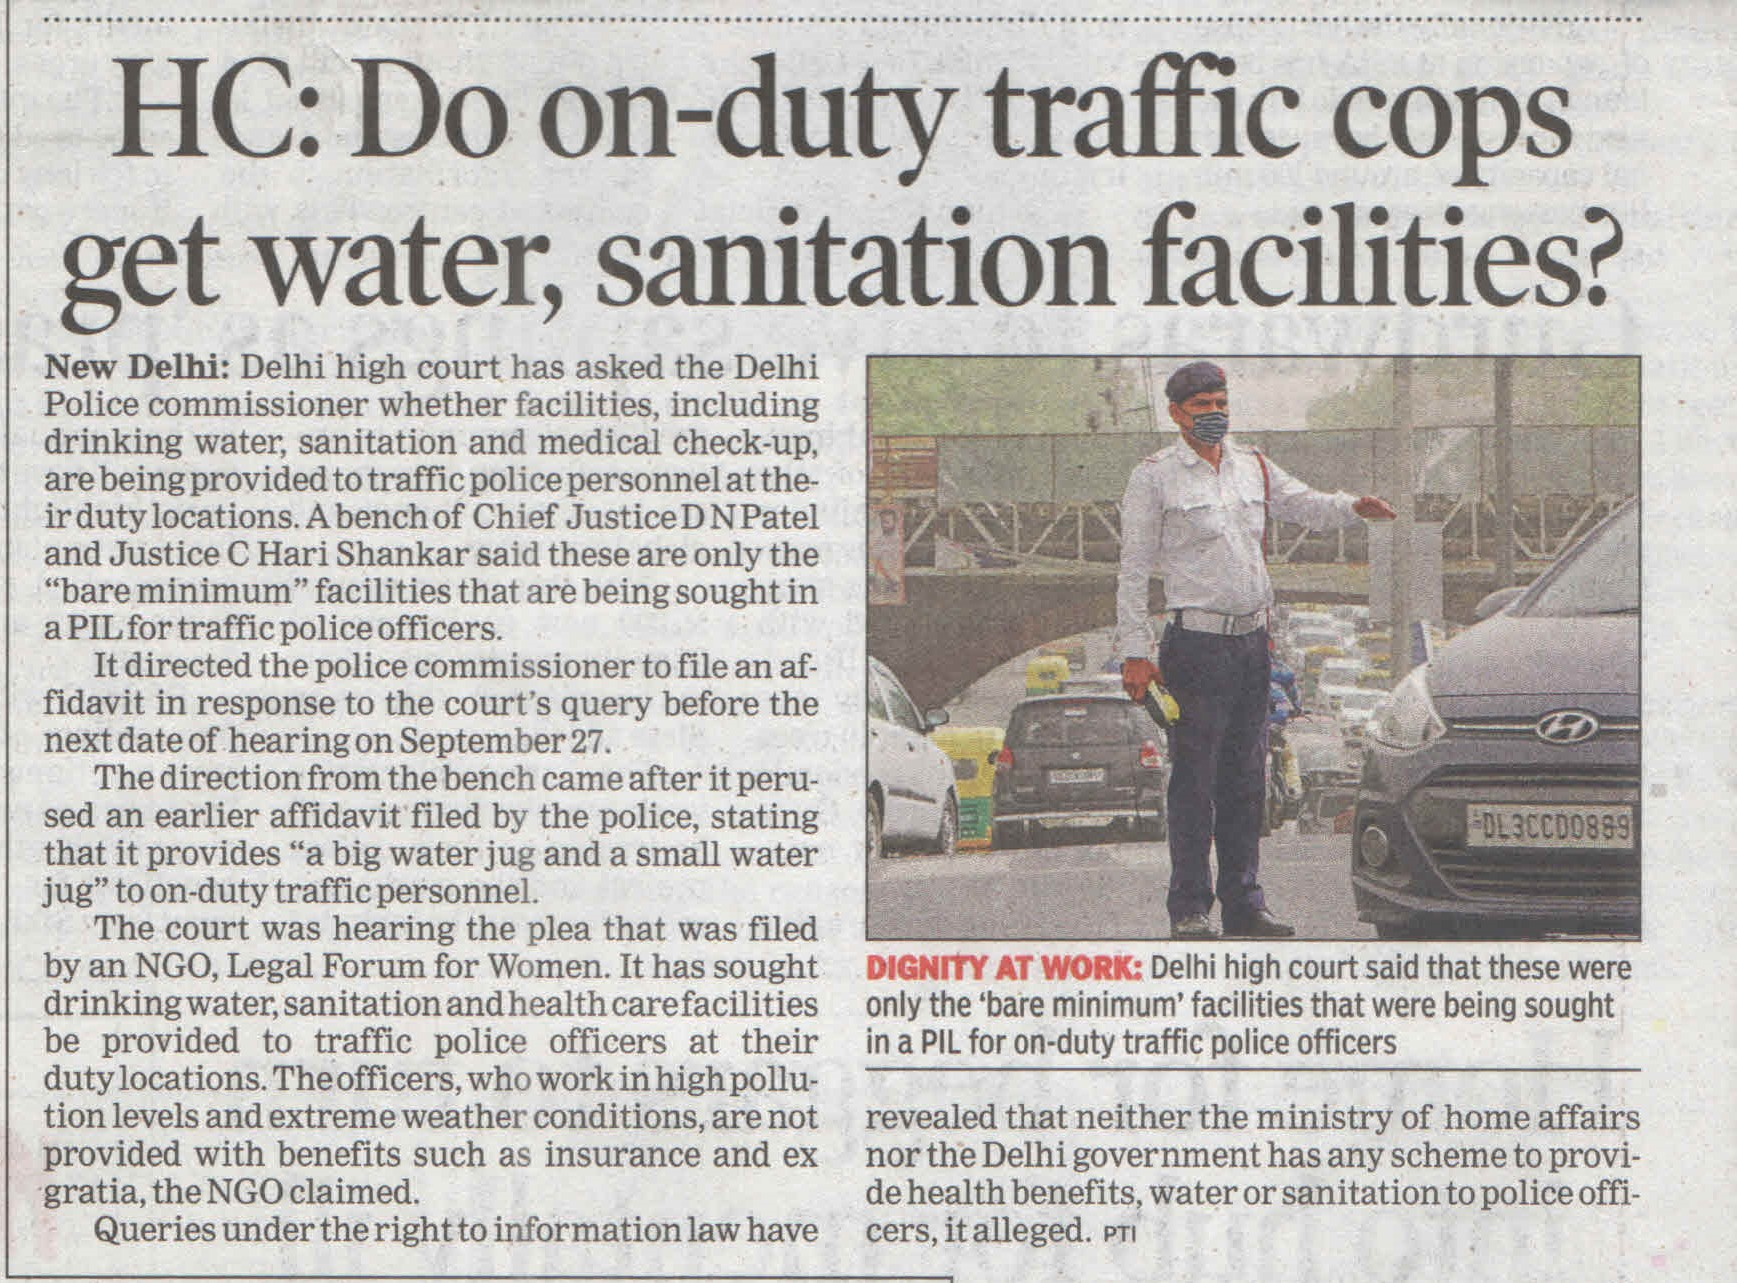 Basic facilities for Traffic Police - HC